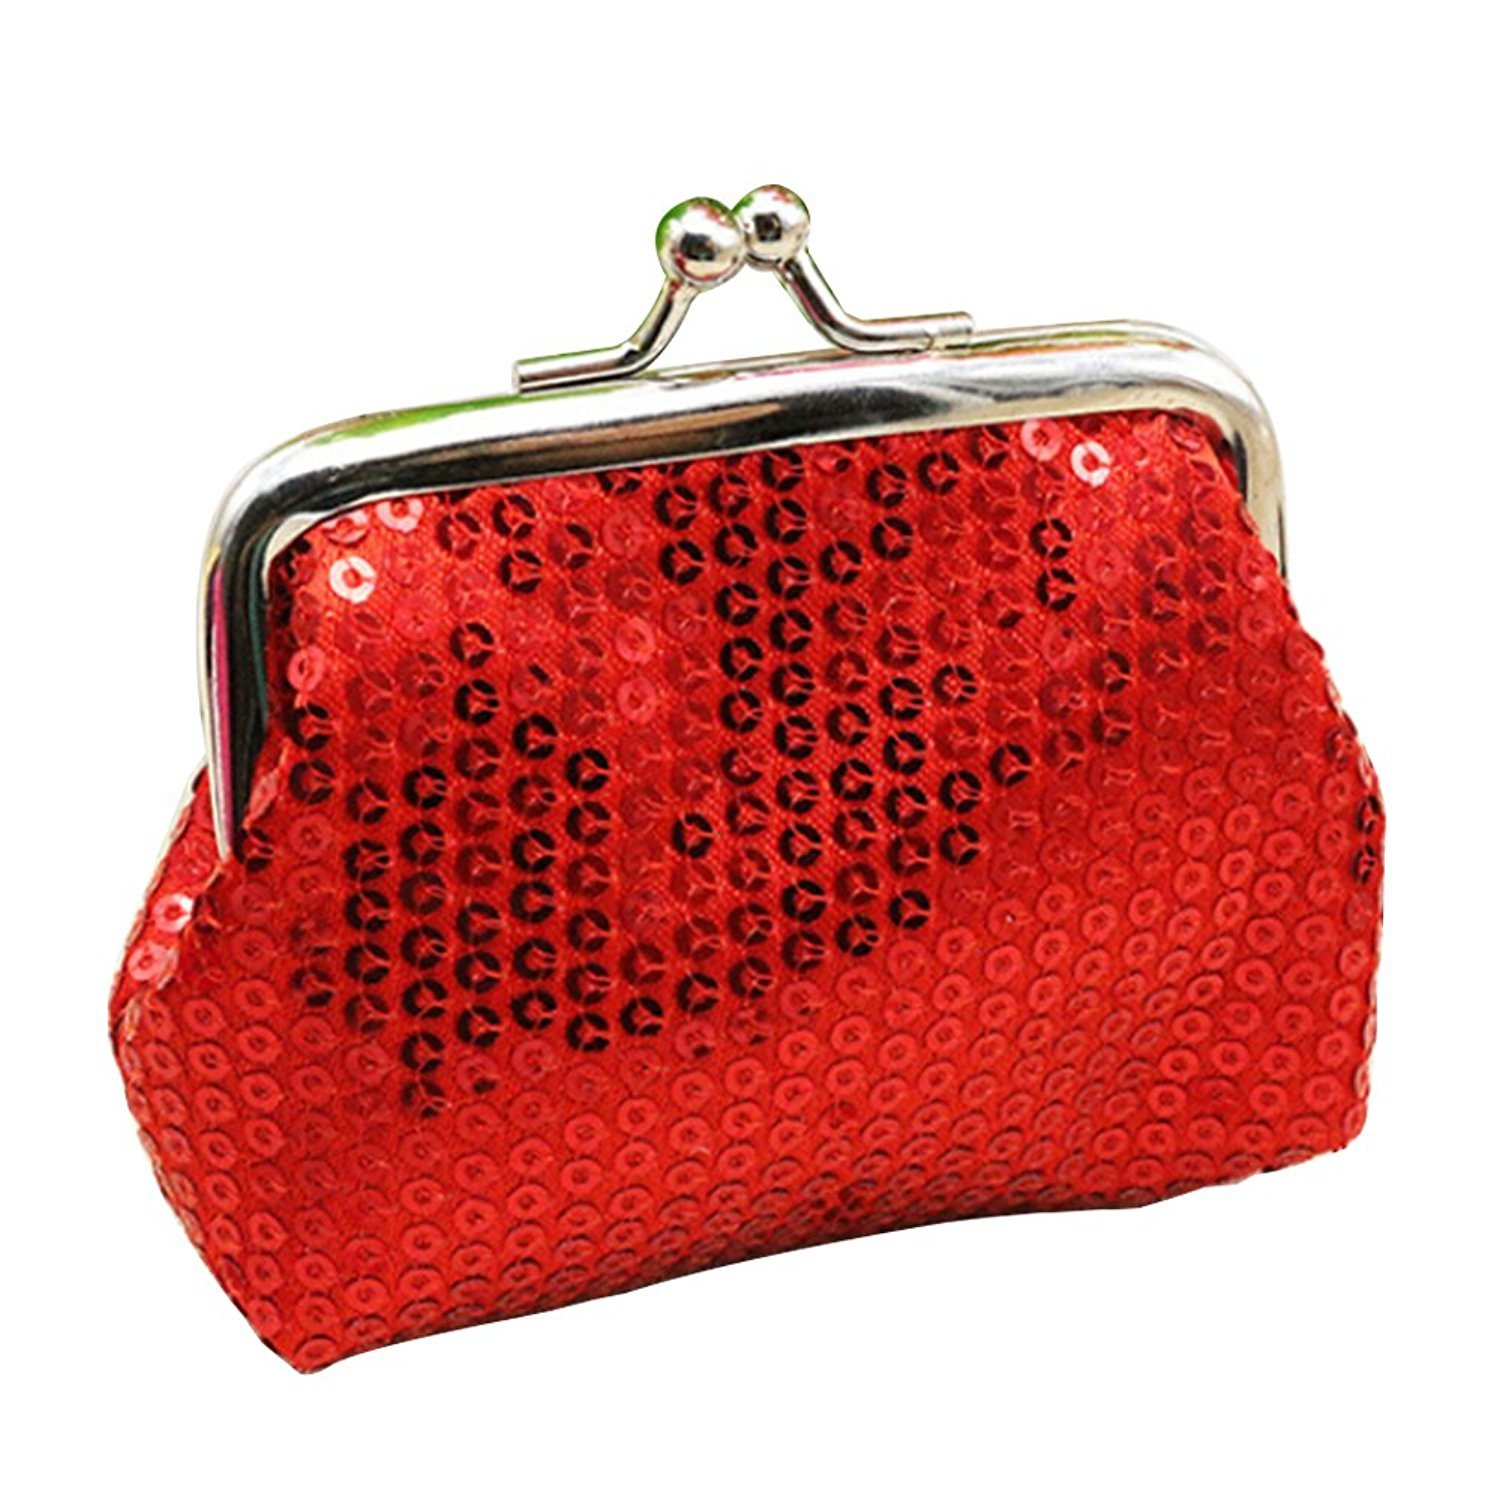 Sanwood Women's Sequins Coin Purse Buckle Mini Wallet SHOMPF3745